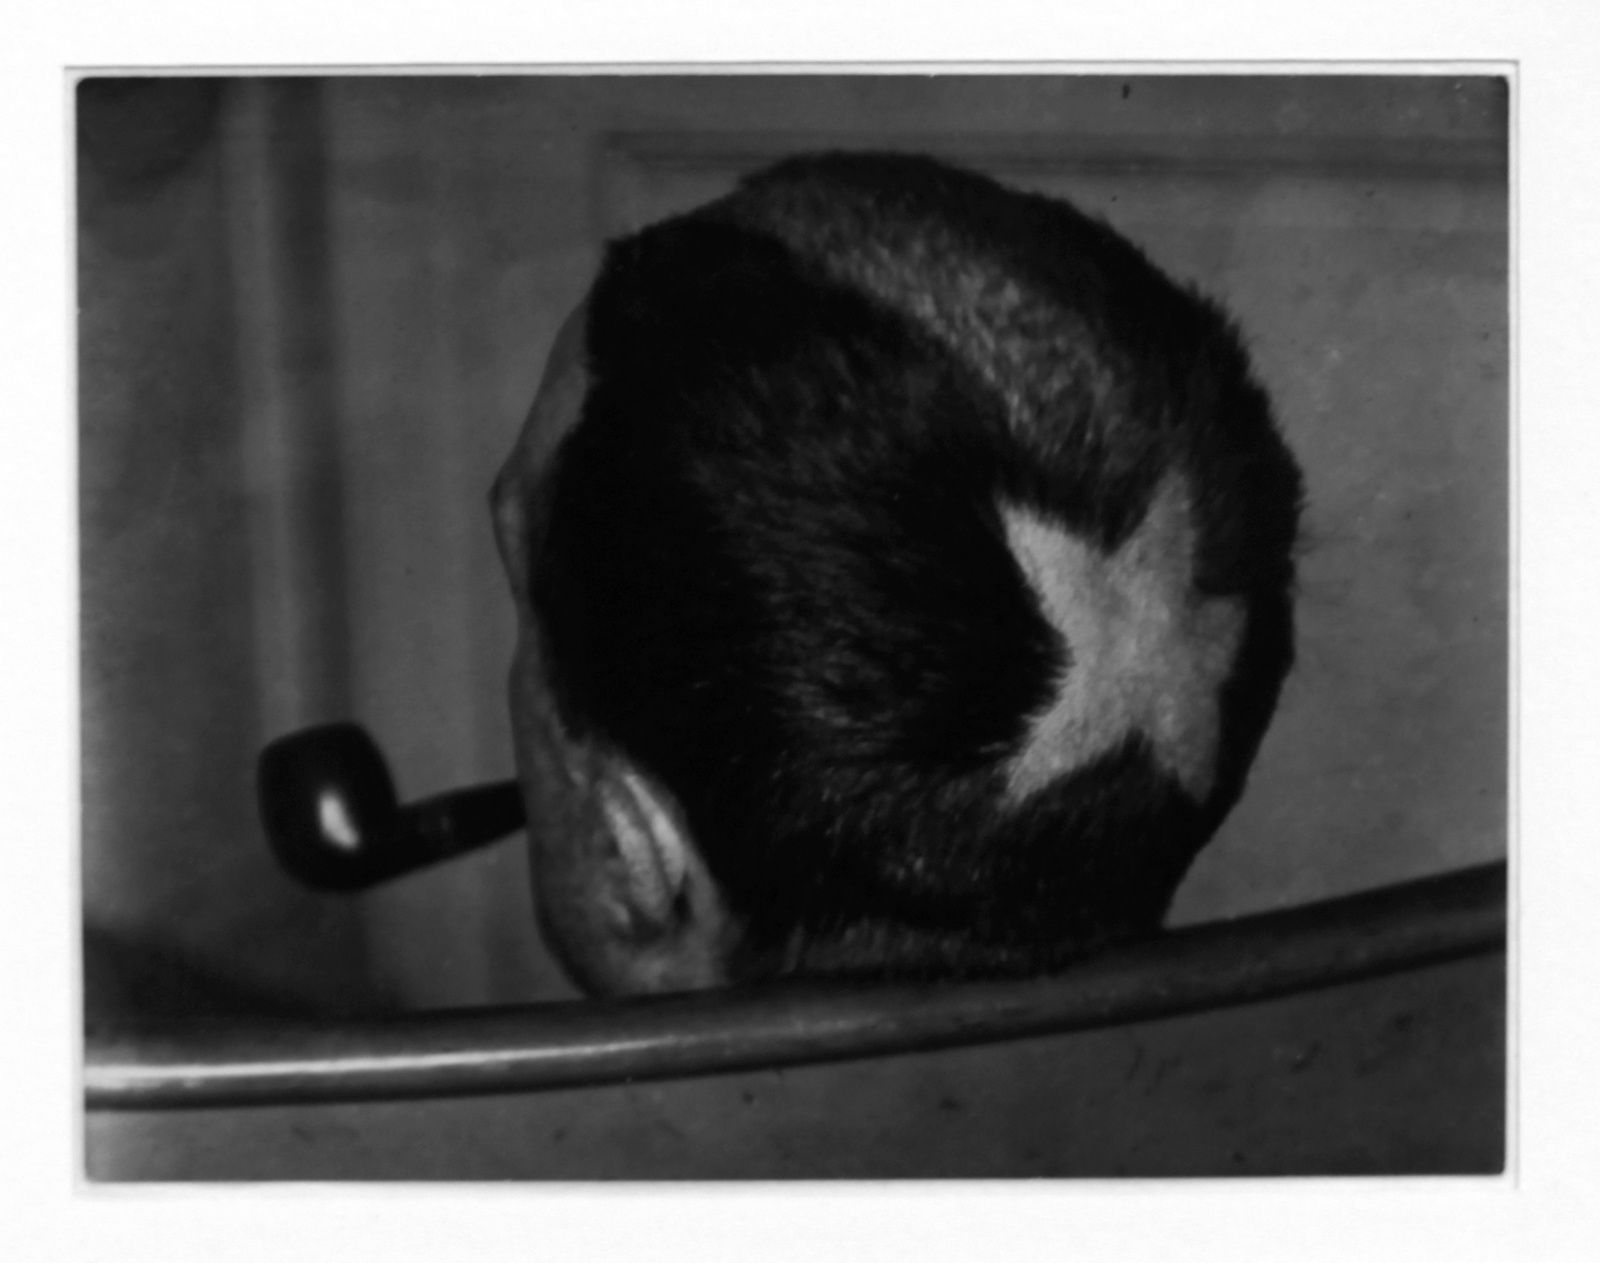 """Marcel Duchamp, la tonsure"", 1920 de Man Ray © Photo Éric Simon"